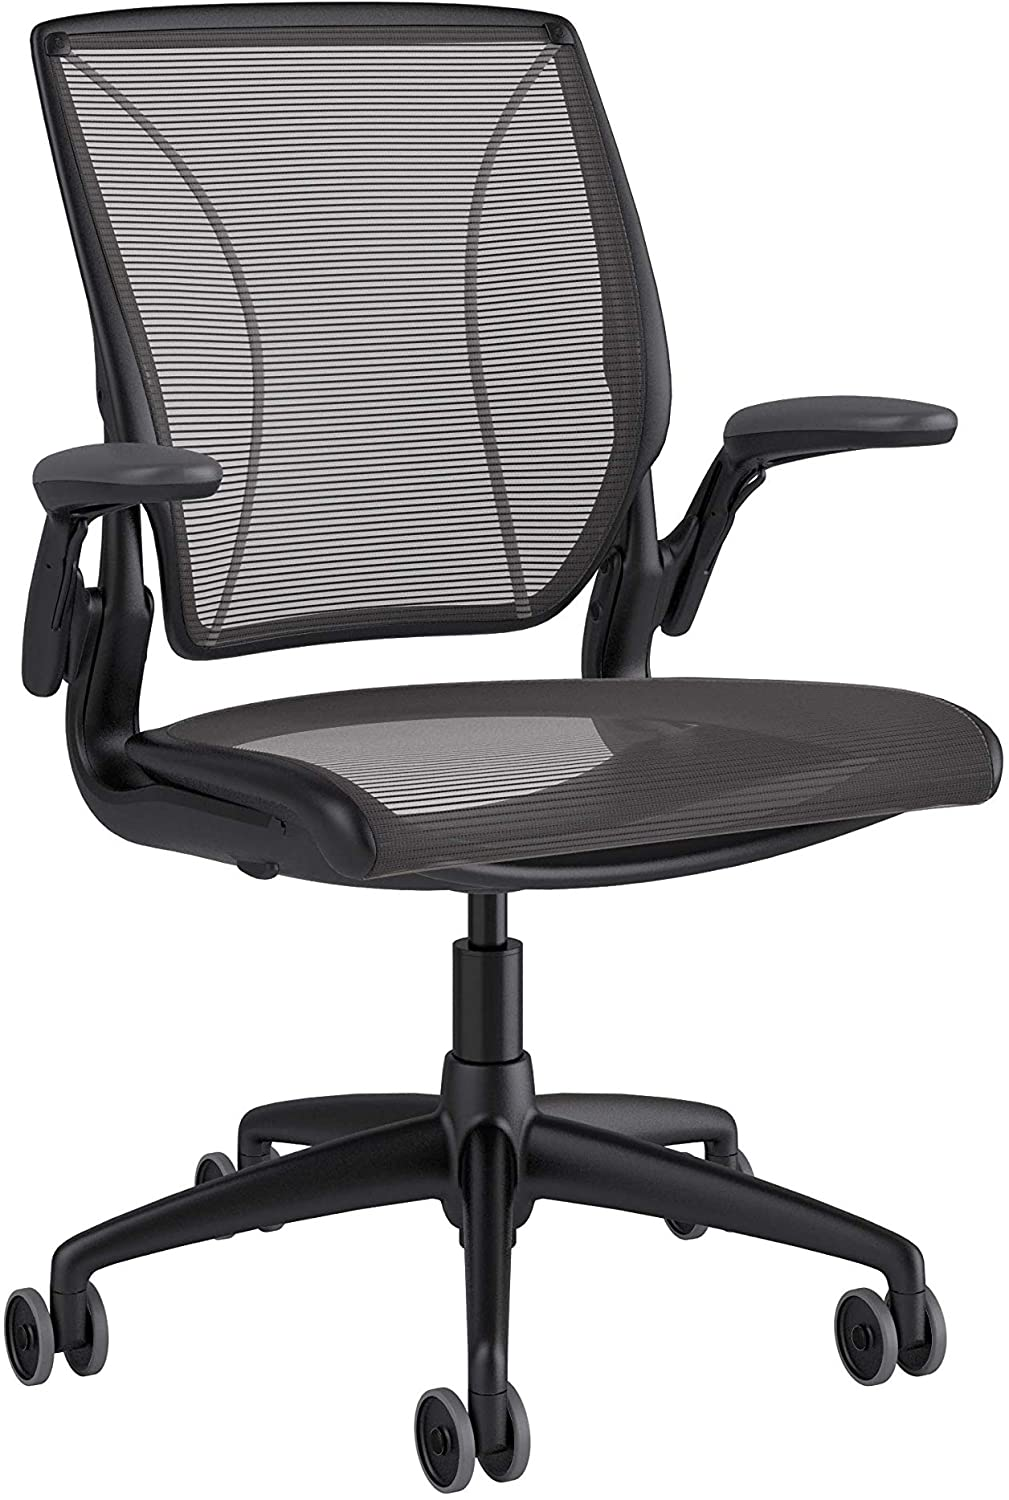 Humanscale Diffrient World Chair | Pinstripe Black Mesh Seat and Back | Black Frame with Black Trim | Height-Adjustable Duron Arms | 3